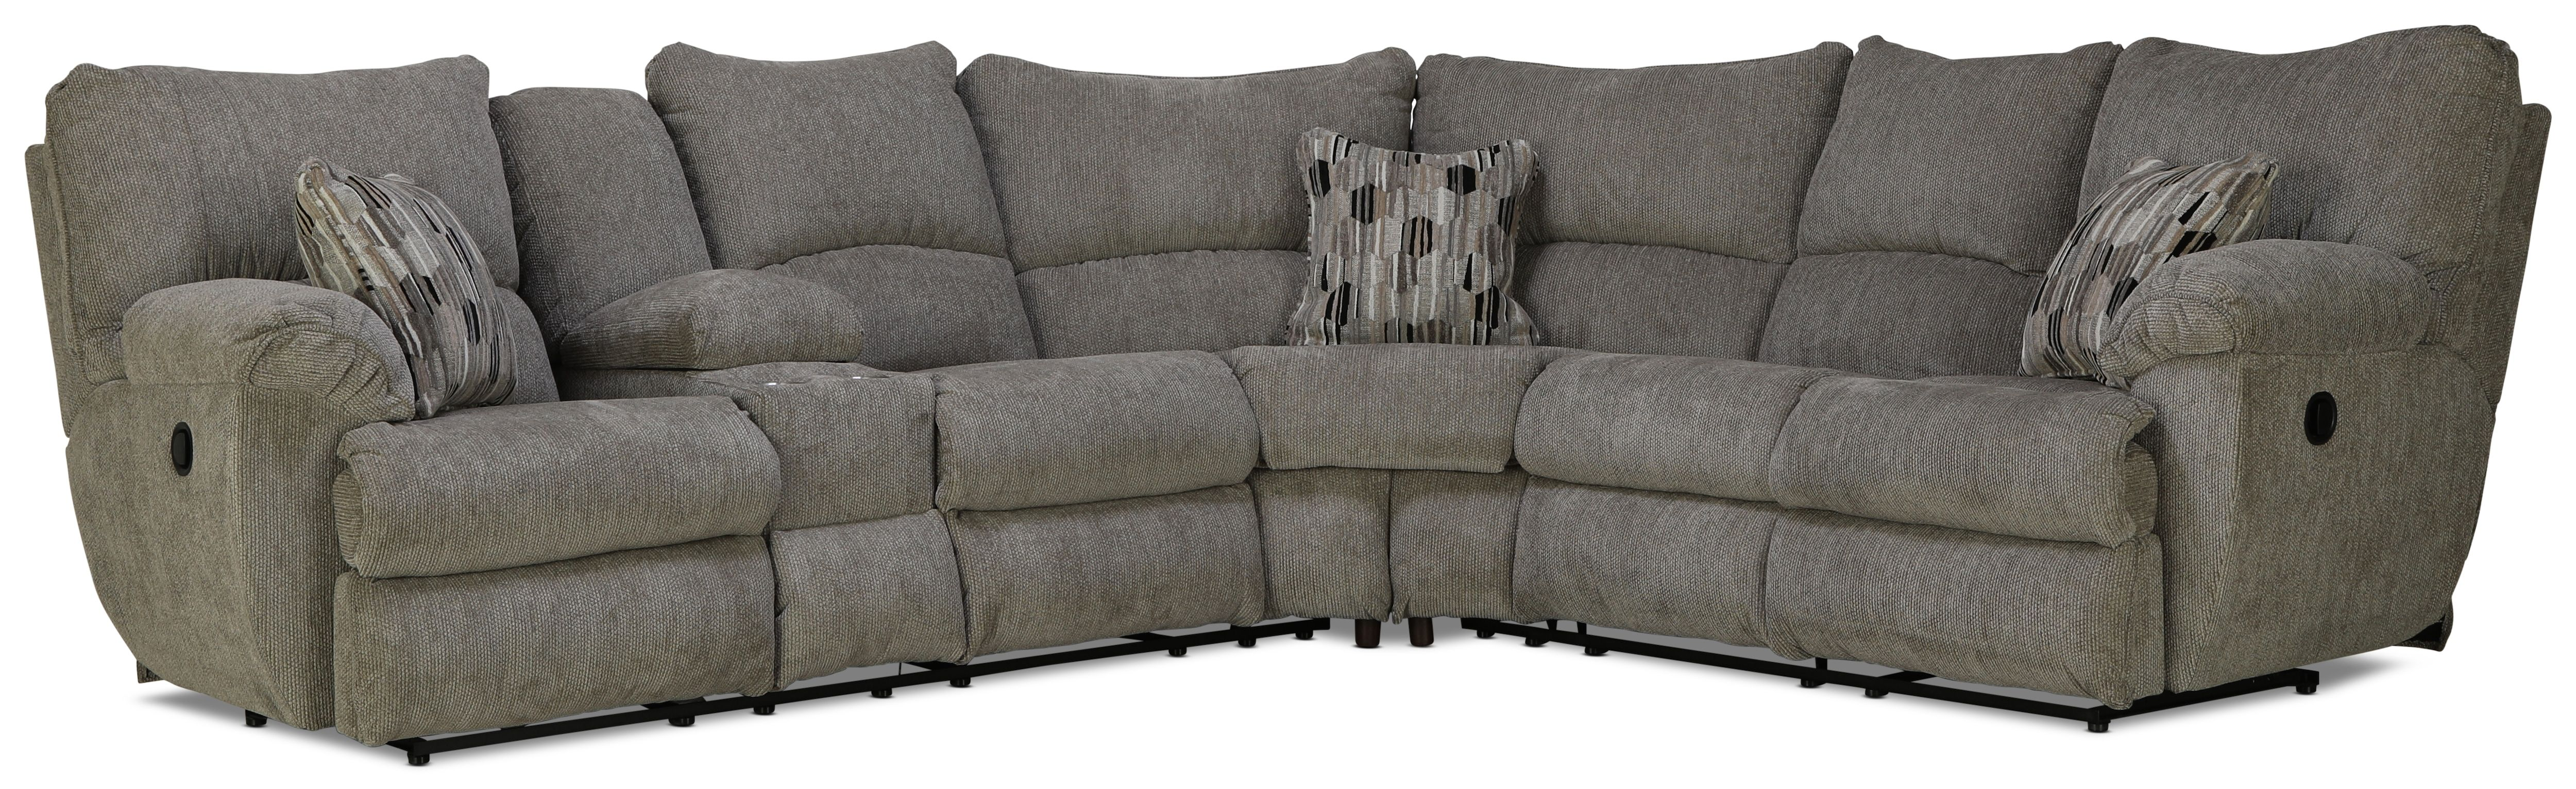 Sectional Levin Furniture Reclining Sectional Sectional Couch